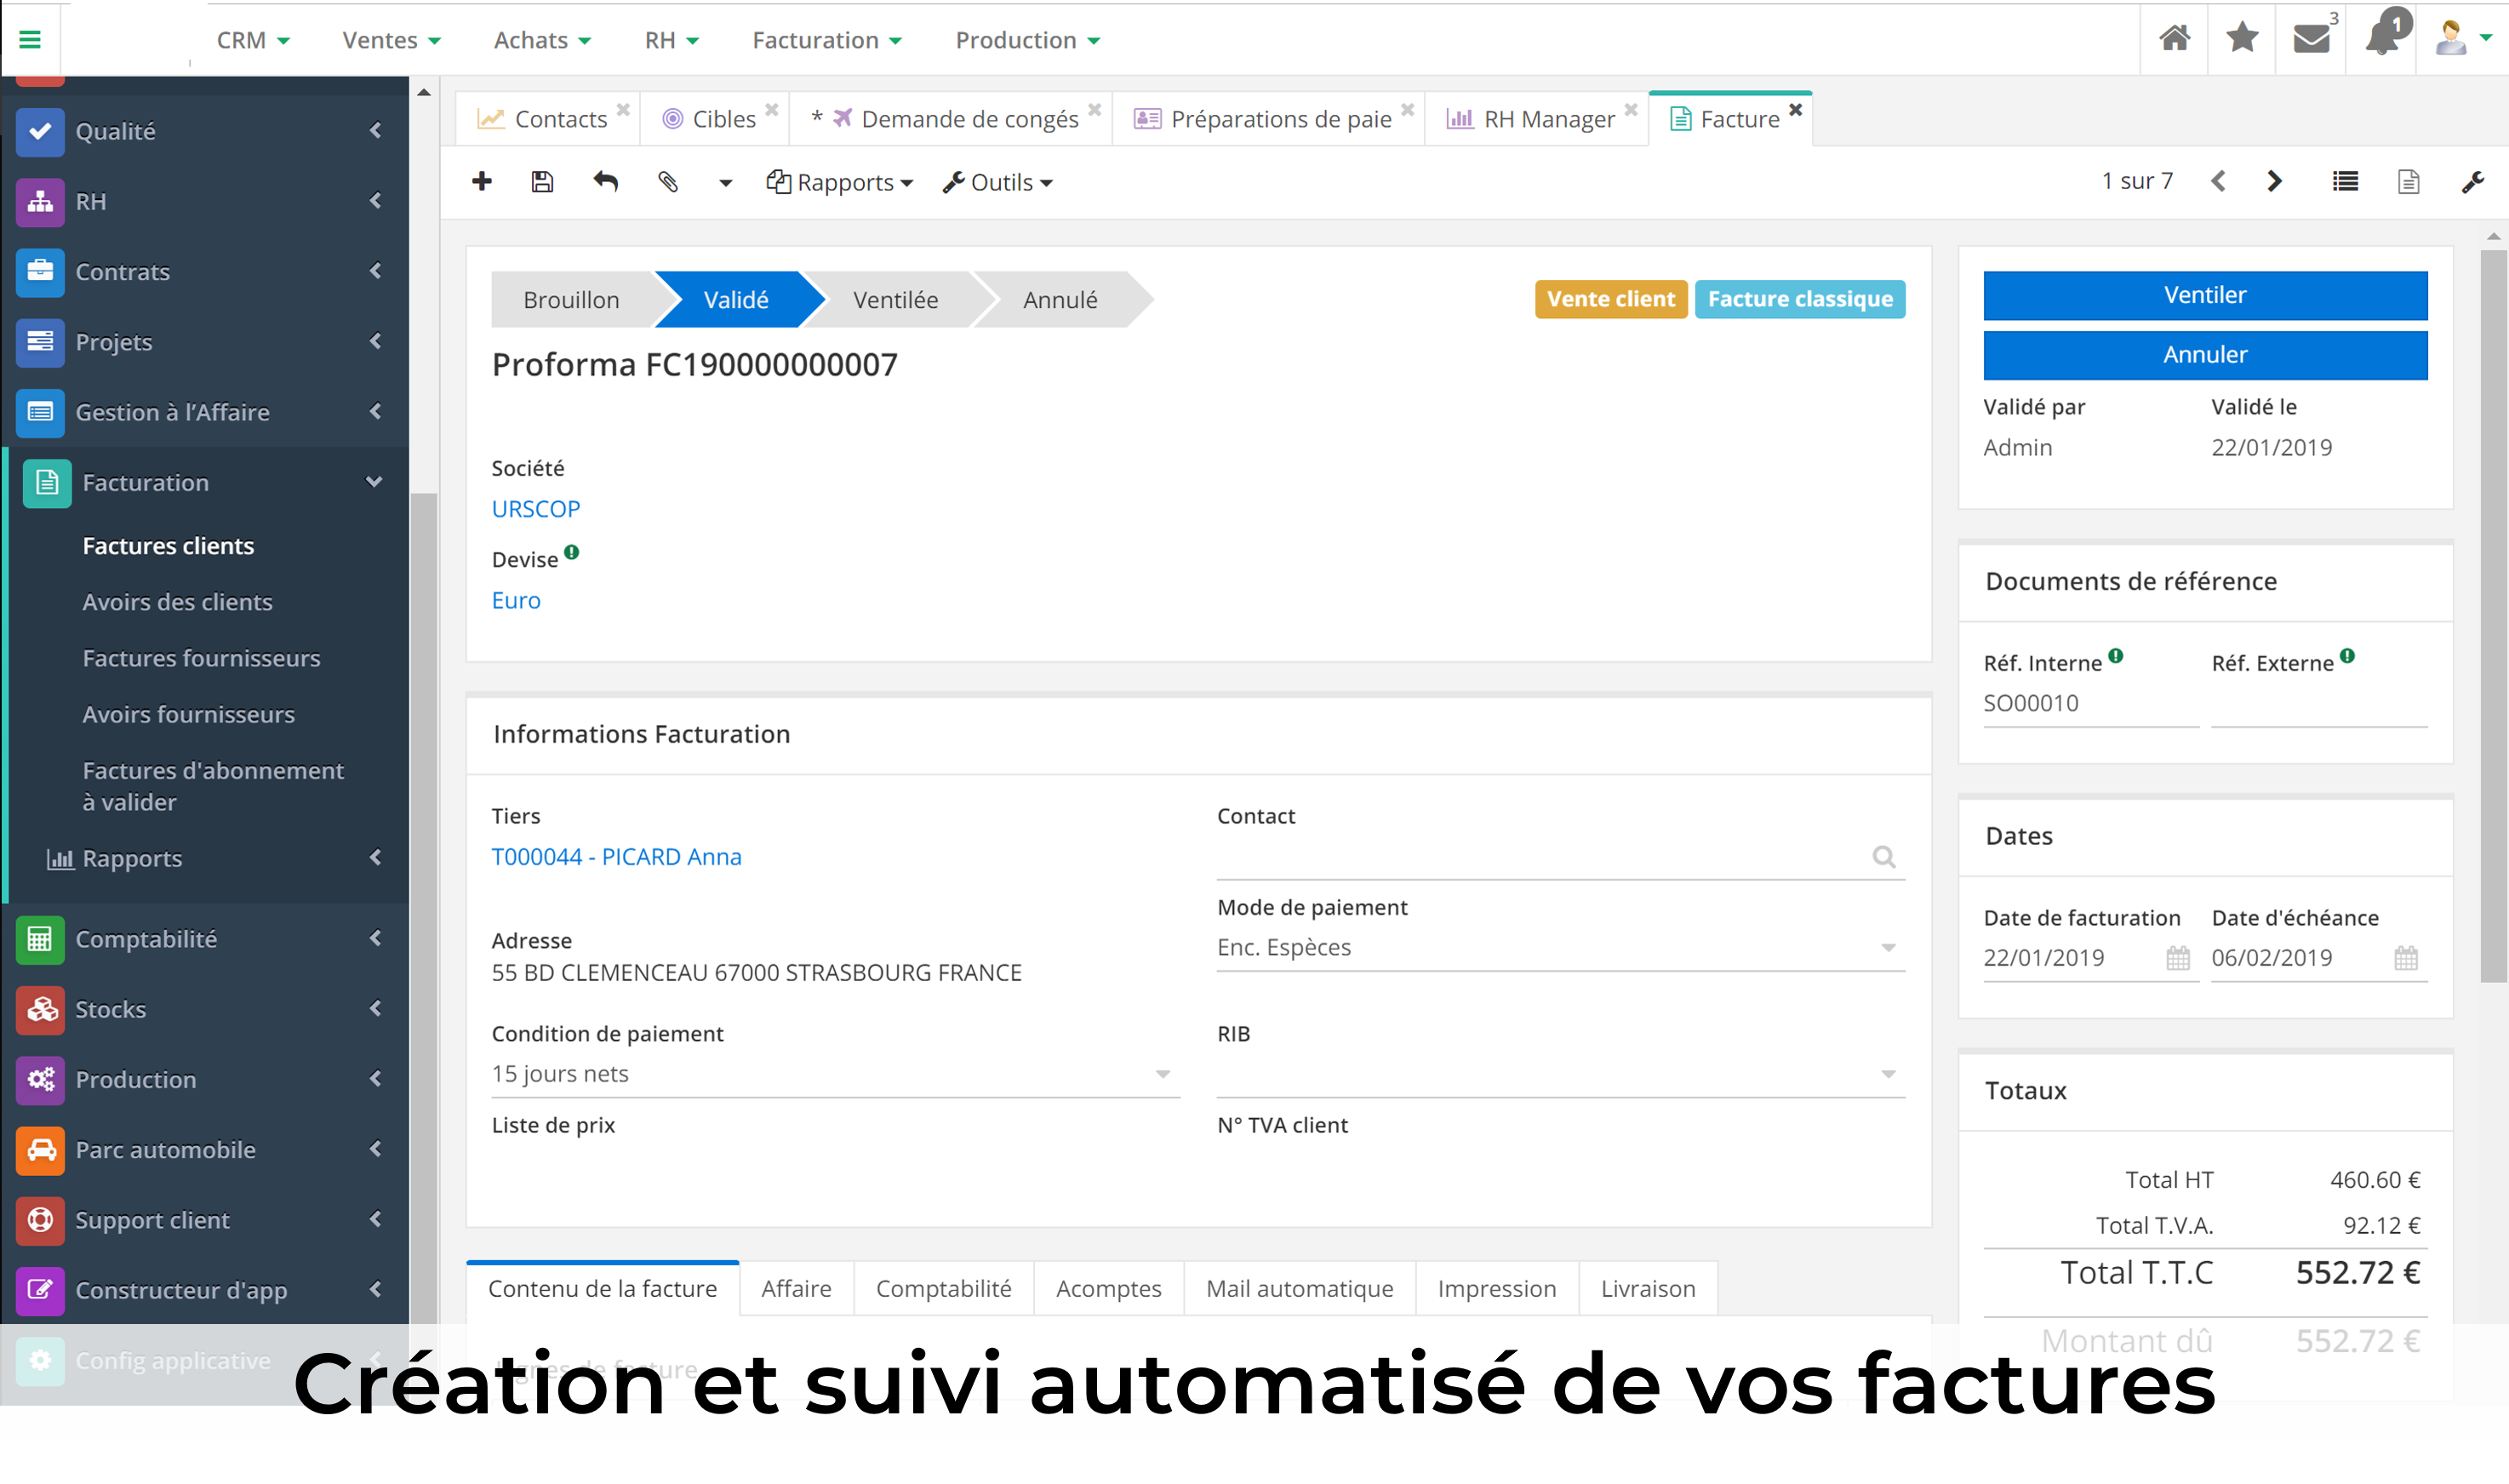 Gestion de la facturation